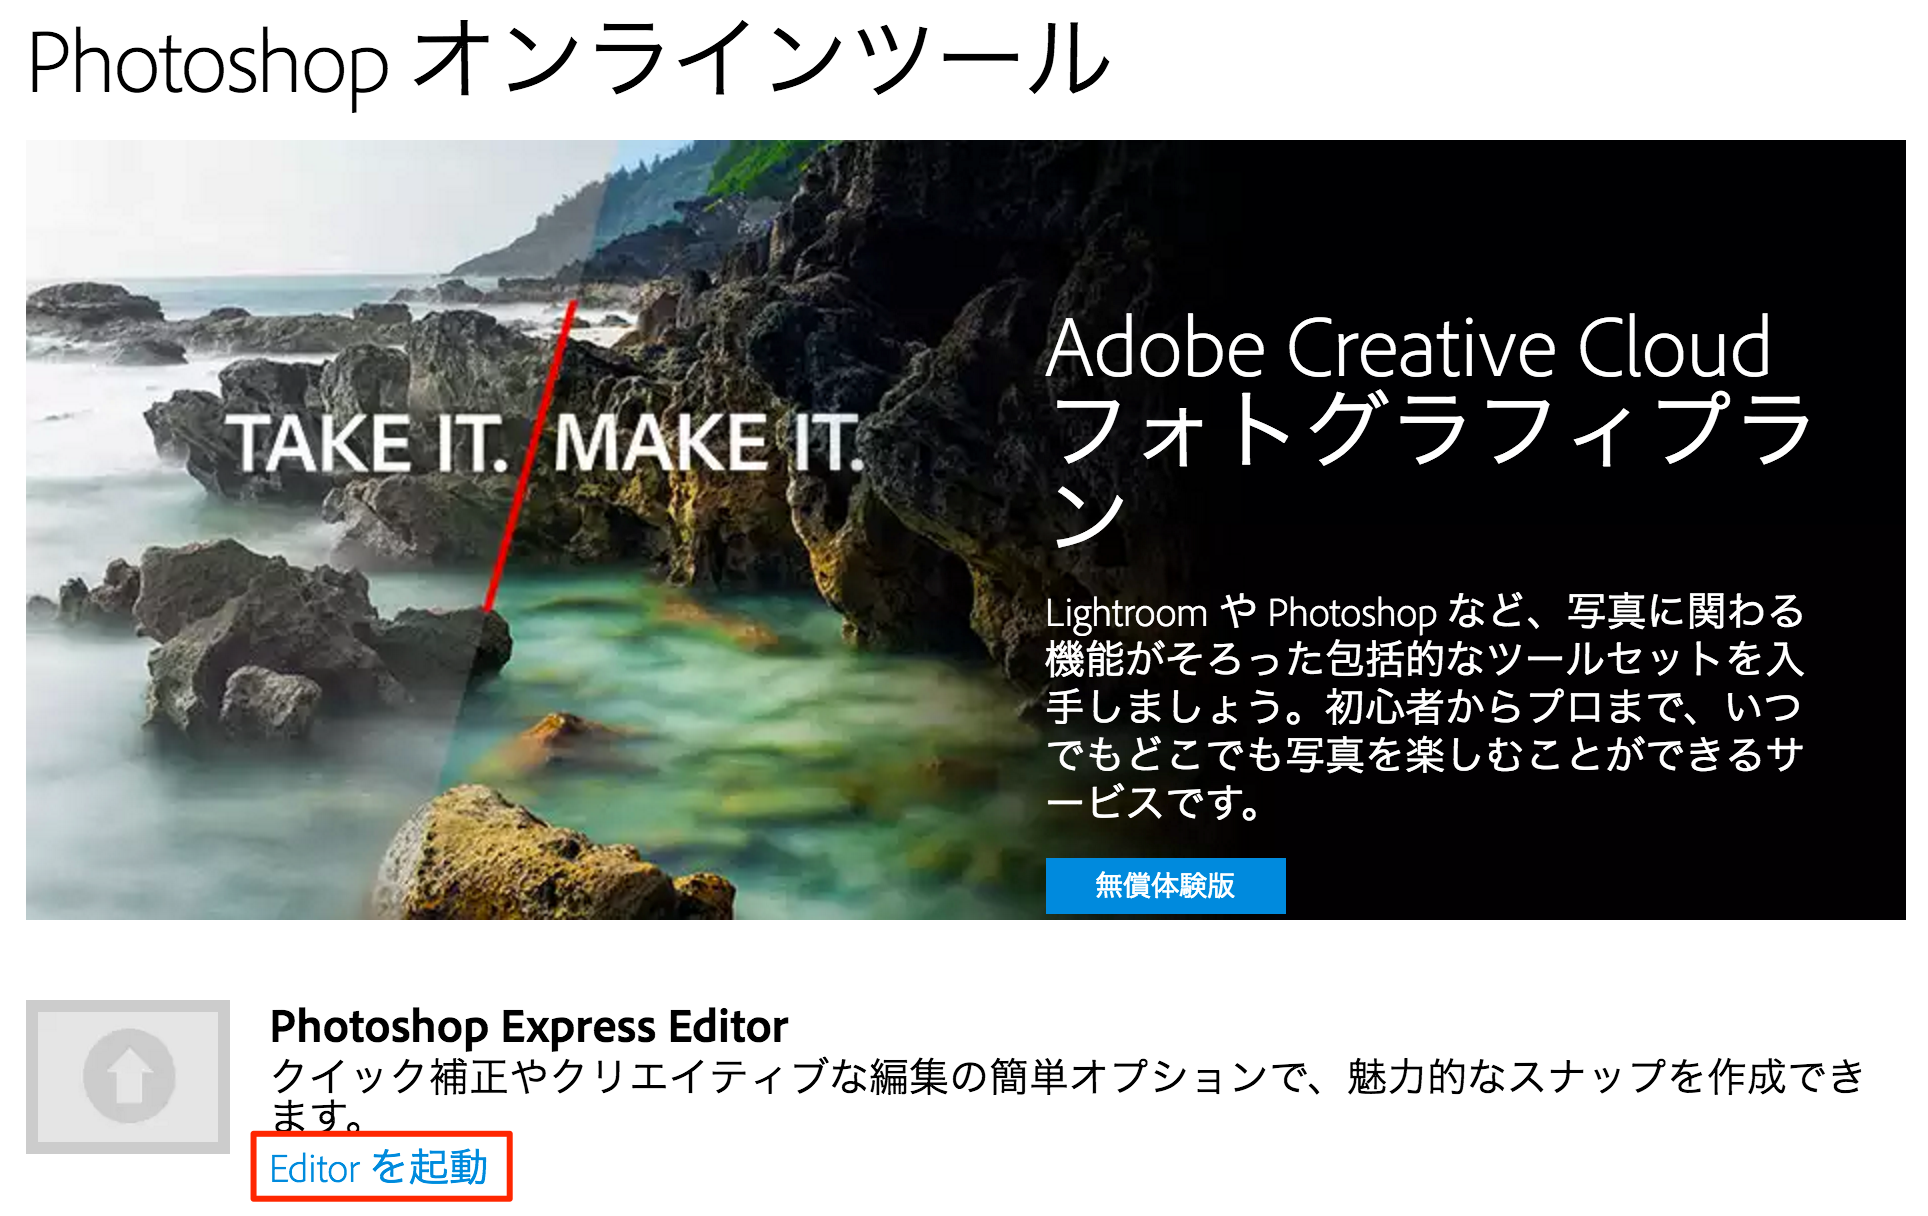 Photoshop_Express_Editor.png